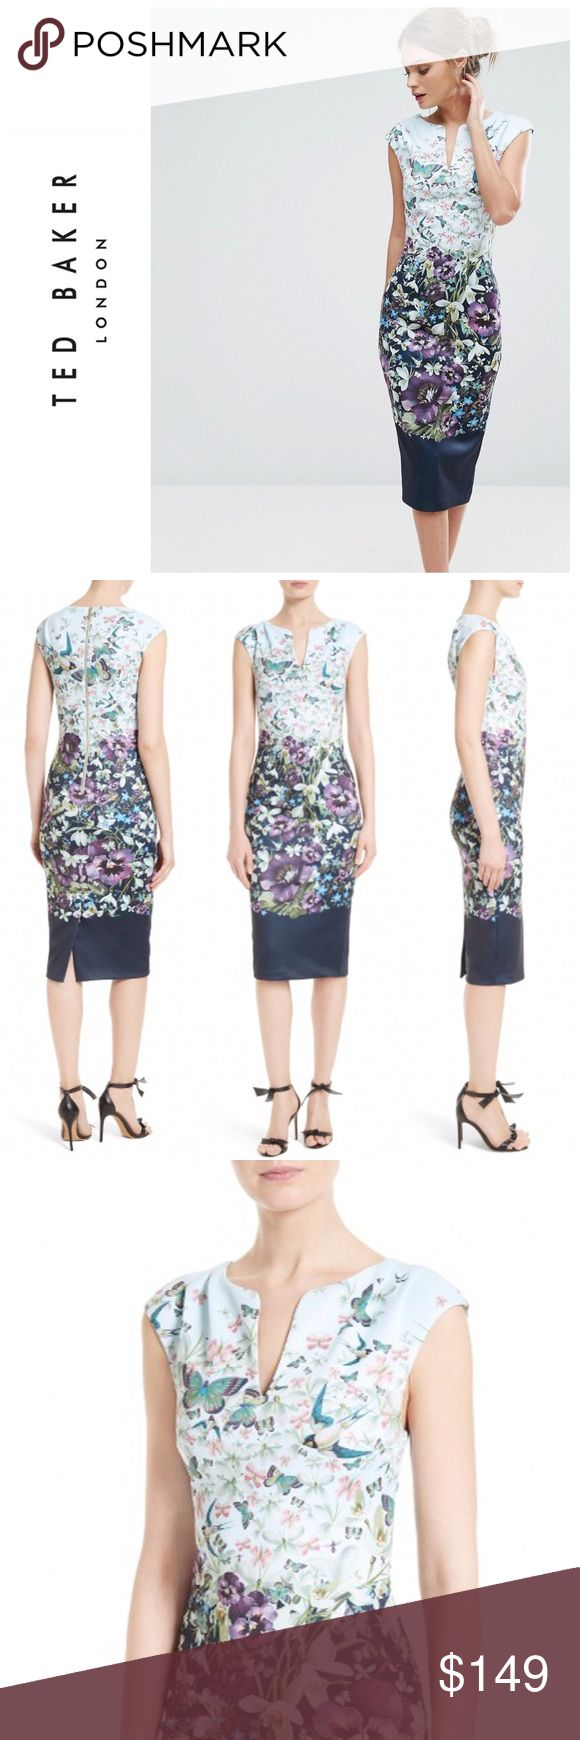 Tiha Entangled Enchantment Floral Dress New with tags, Ted Baker London Tiha Entangled  Enchantment Sheath dress. Simply gorgeous print of florals and butterflies. Ted Baker Size 5. Nordstrom website suggests it will fit US Size 14. Ships next day. Ted Baker London Dresses Midi